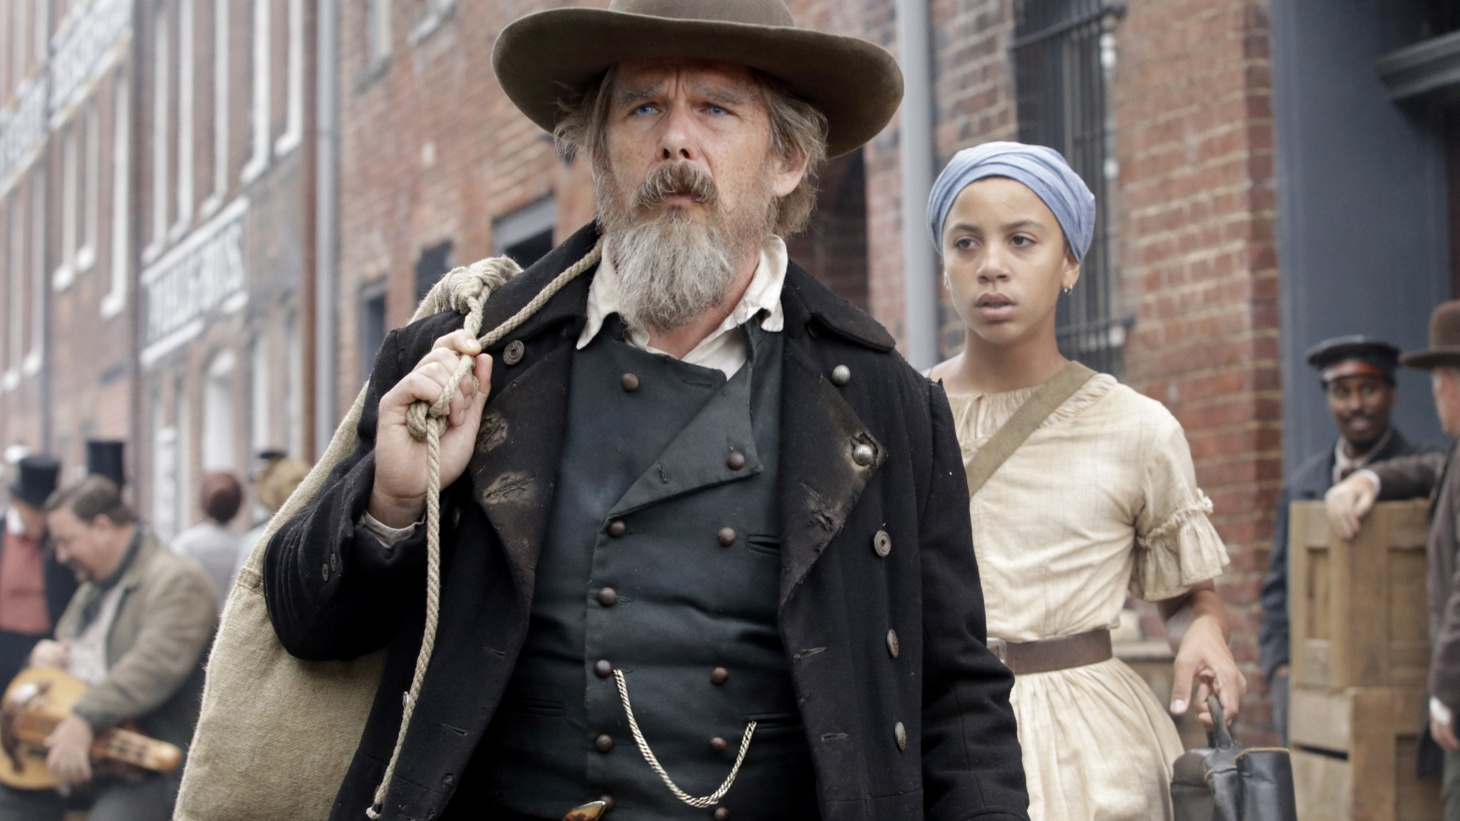 """Ethan Hawke (left) and Joshua Caleb Johnson (right) star in Showtime's """"The Good Lord Bird,"""" about the life of the abolitionist John Brown."""